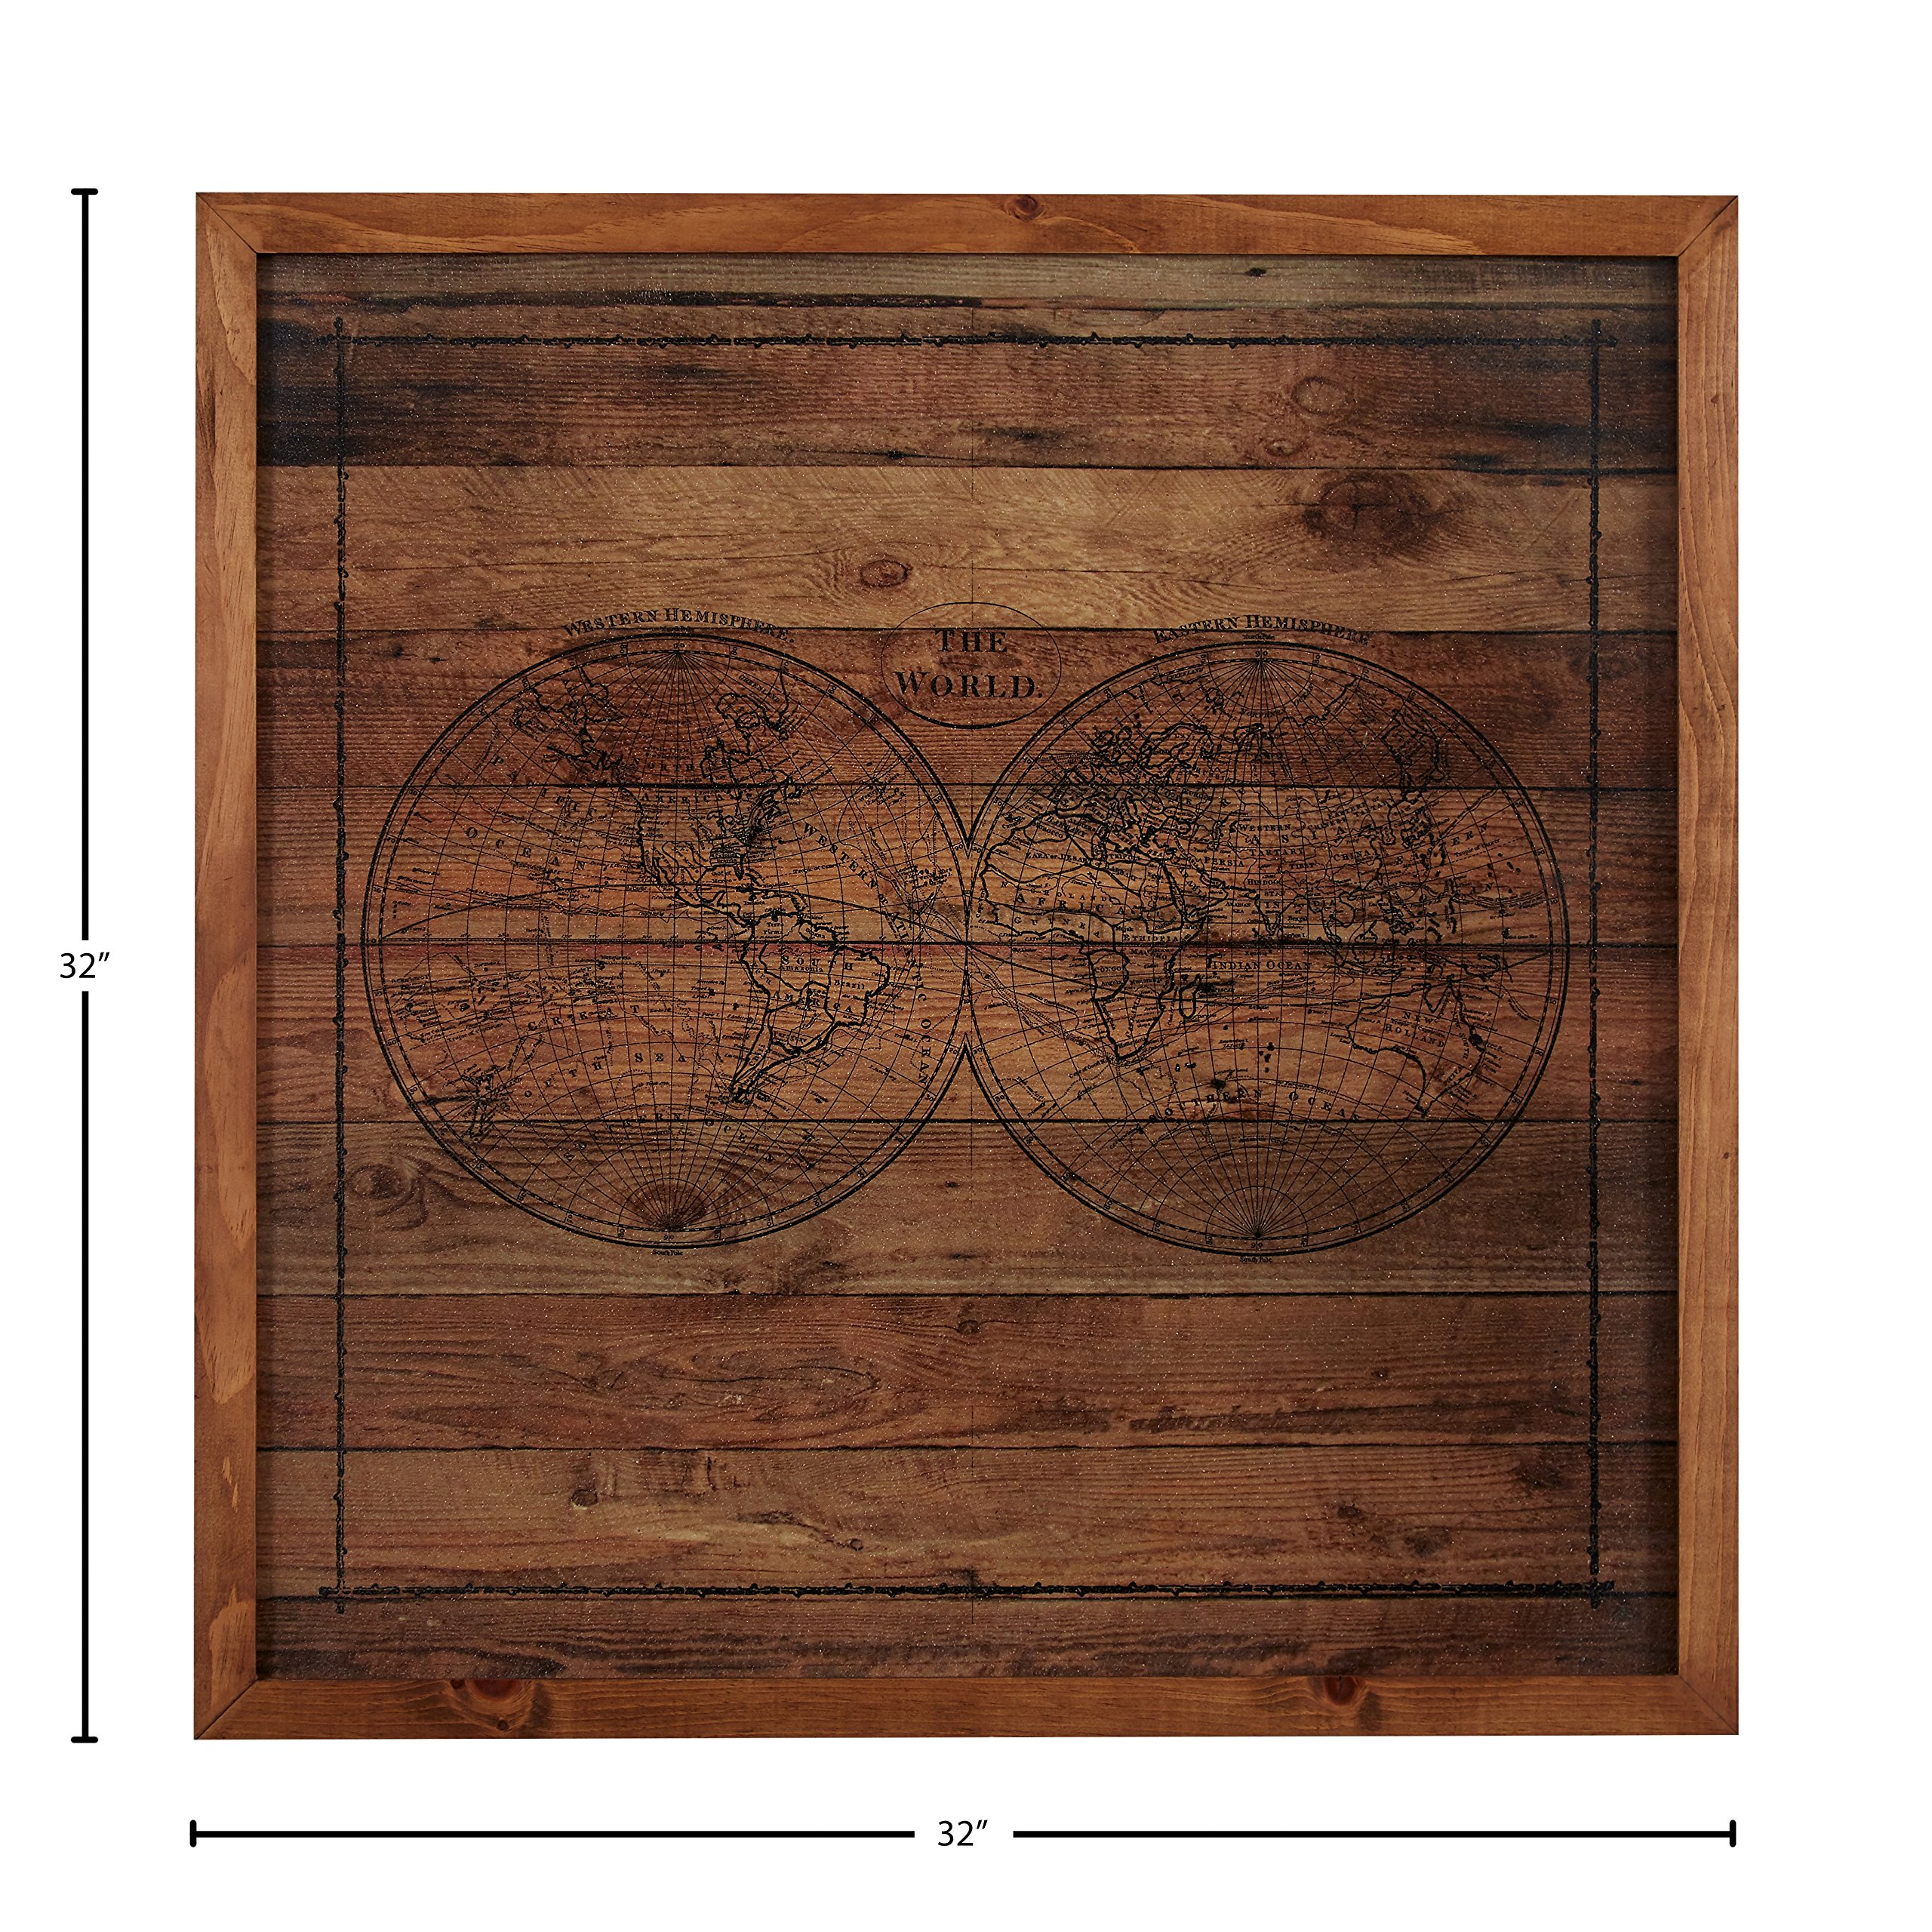 Modern Black Ink Global Map on Paper, on Wood, Brown Frame, 32'' x 32'' by Stone & Beam (Image #4)